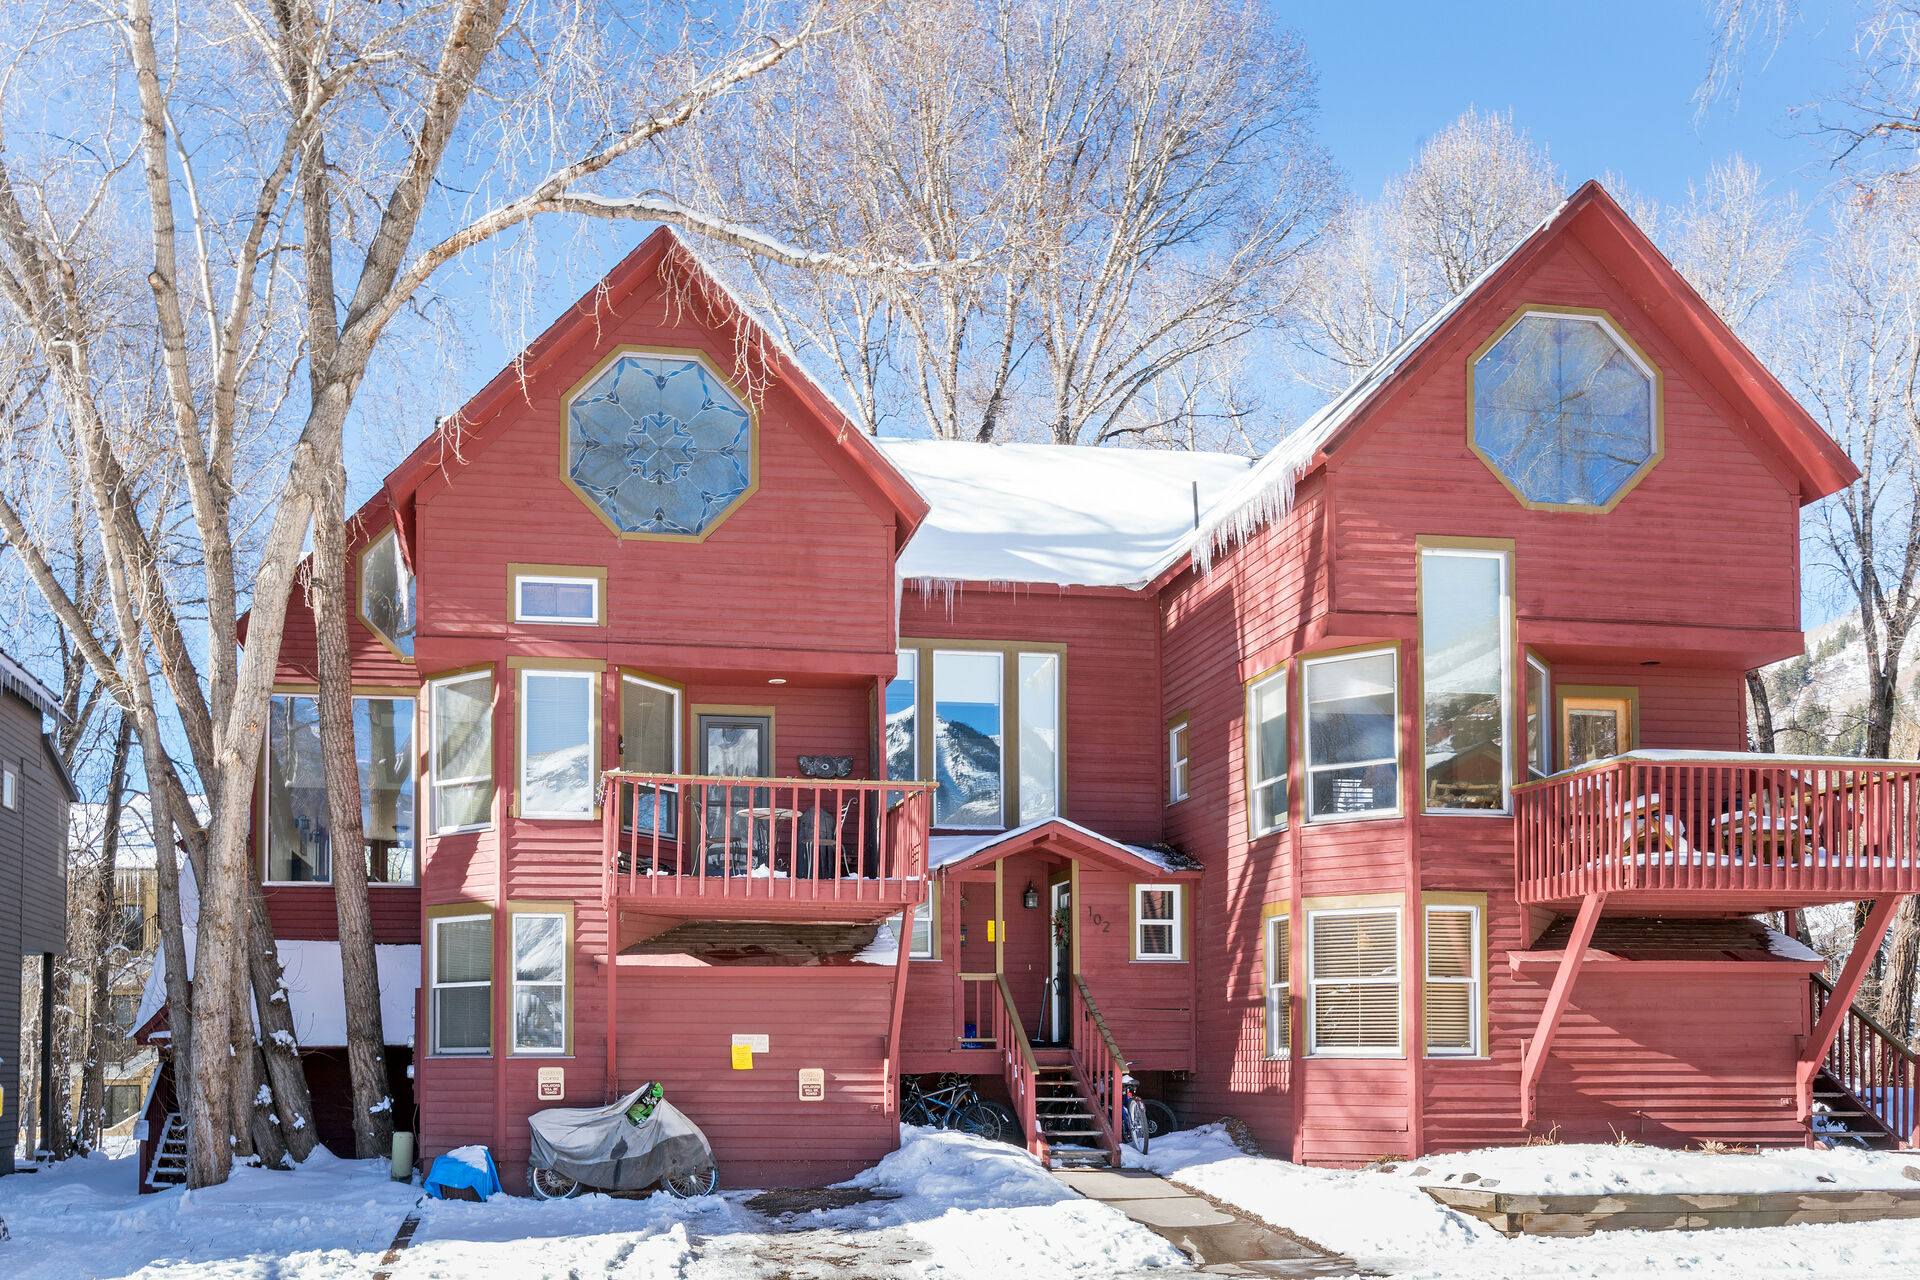 Front Picture of our Telluride Condo Rental